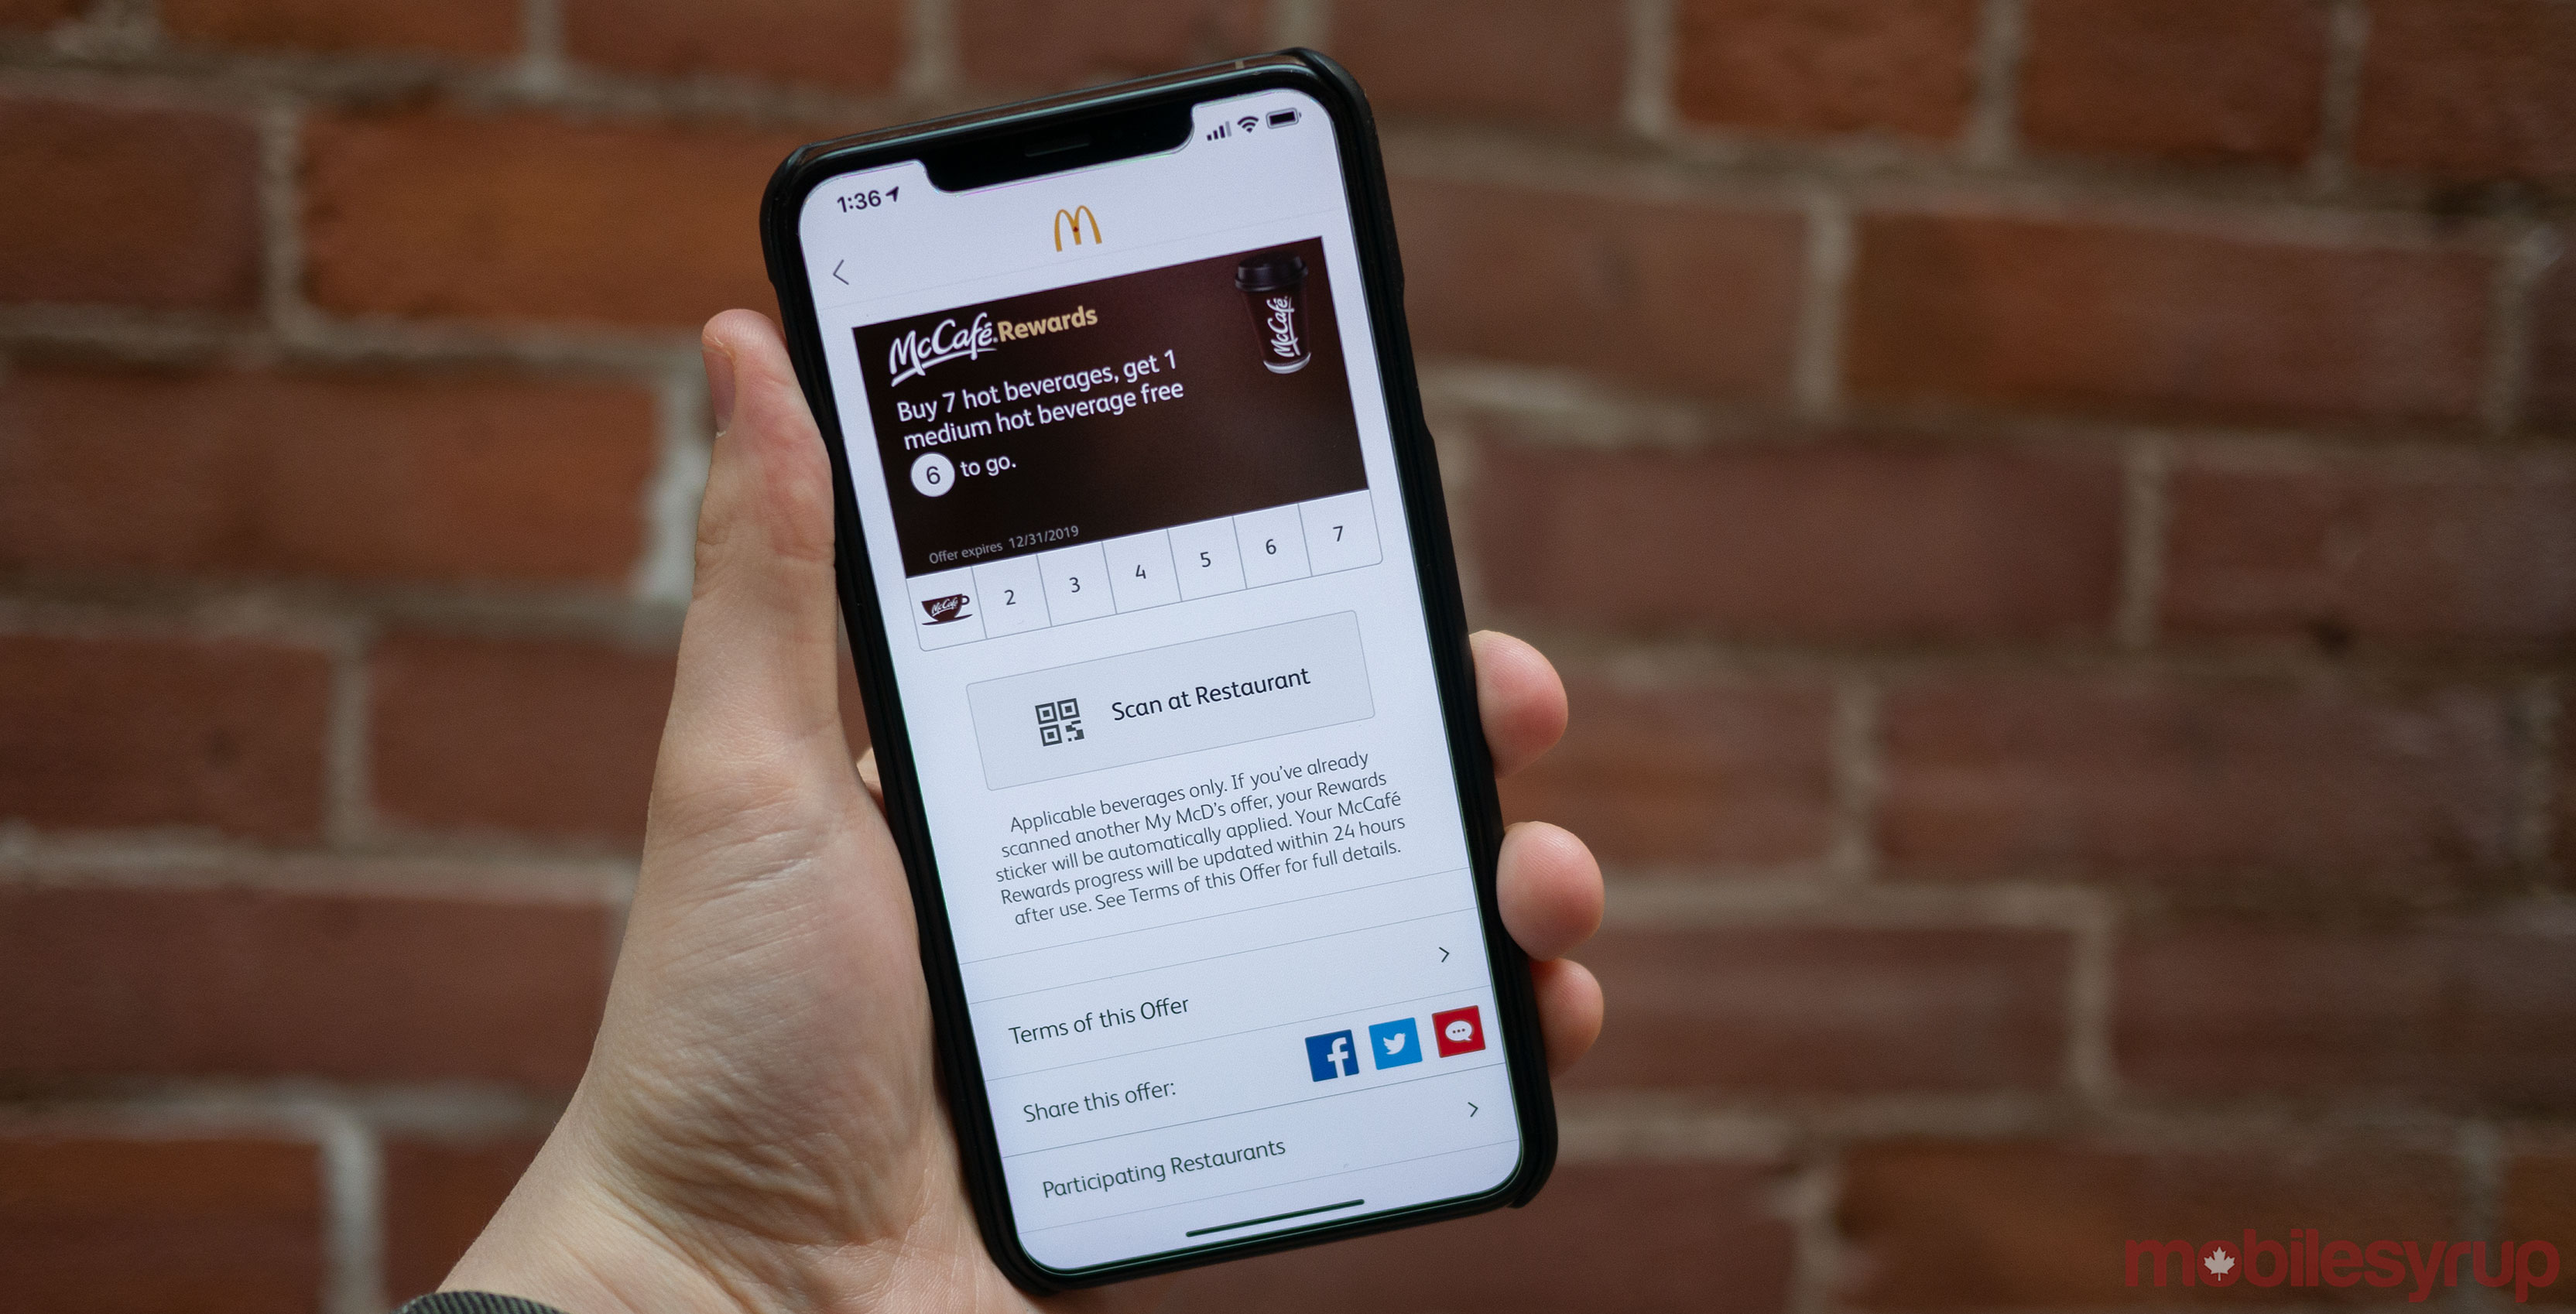 McdVoice Rewards